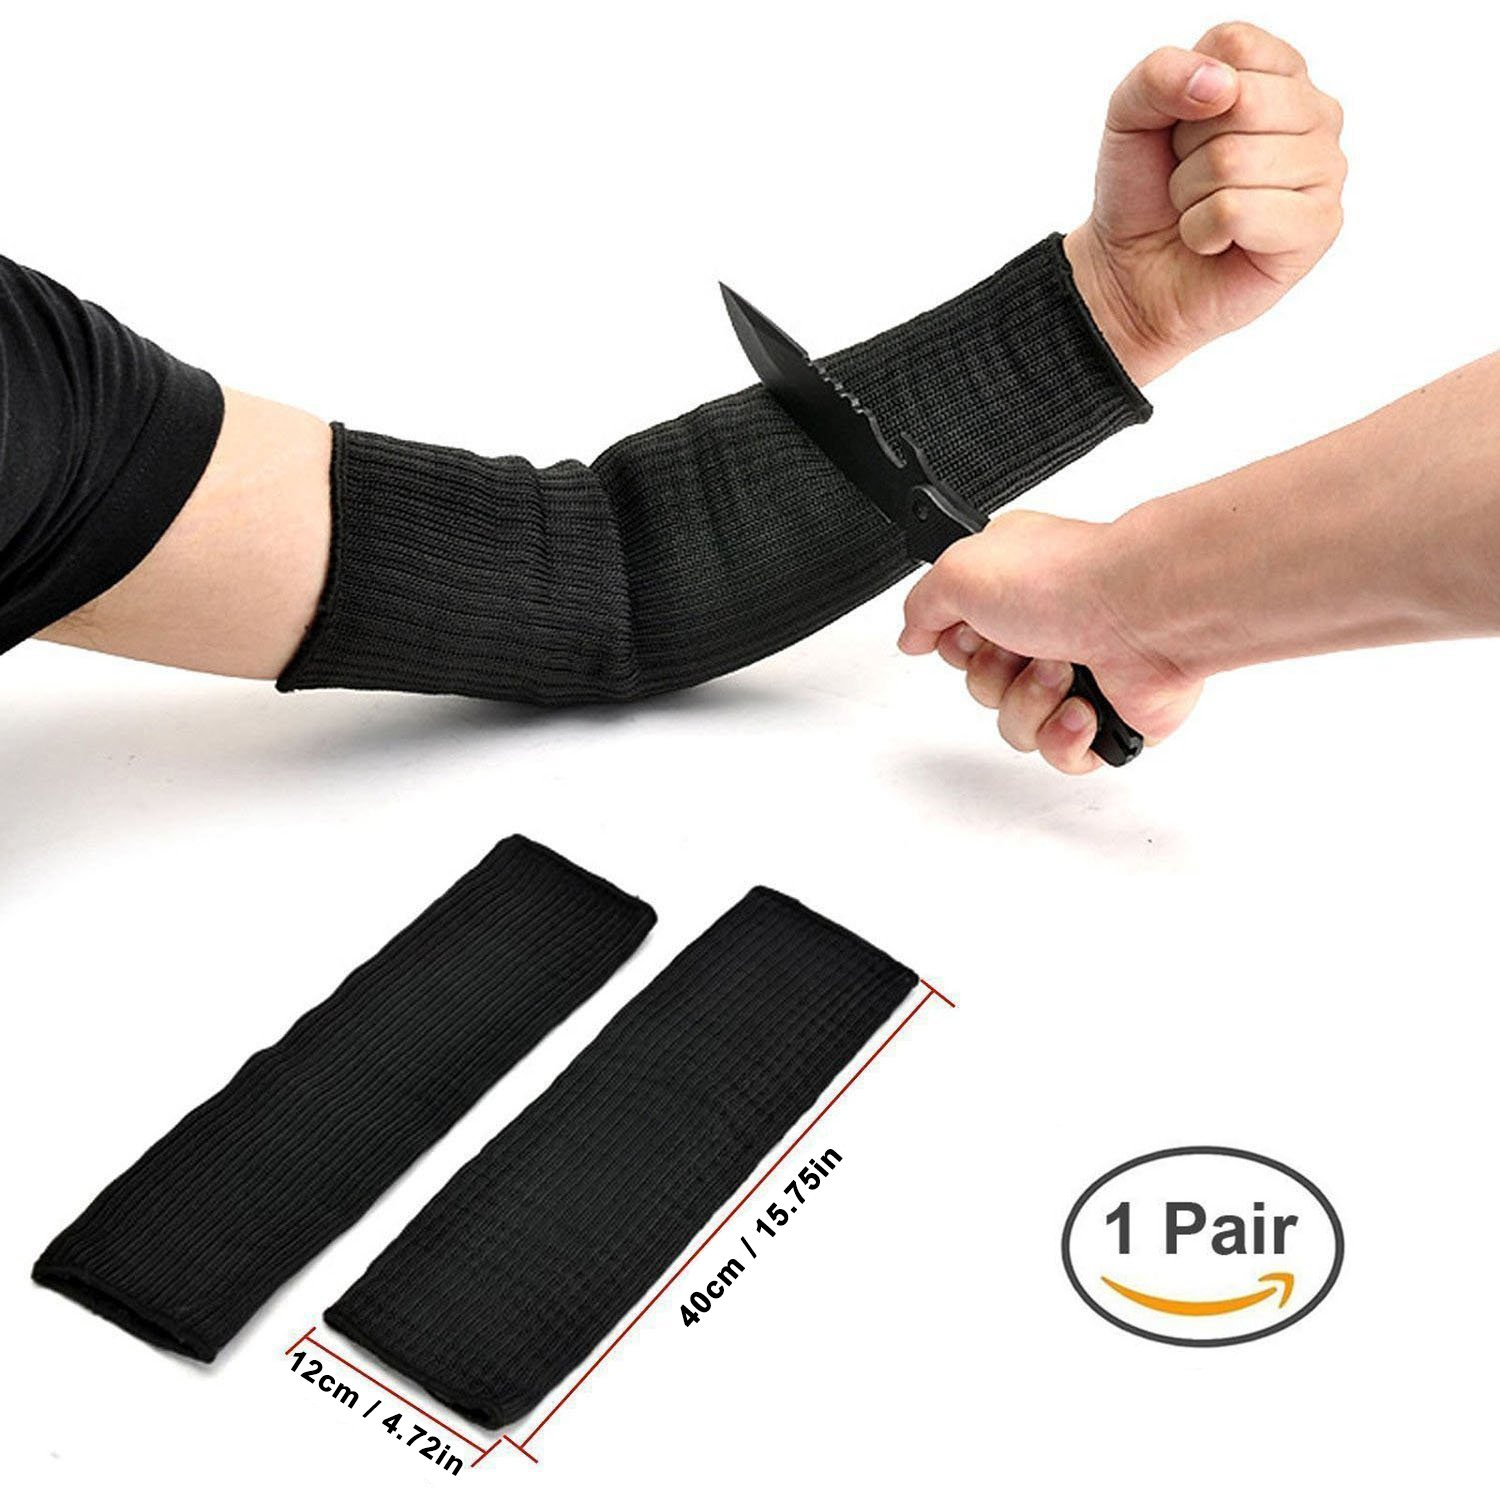 Joycentre Steel Wire Arm Protection Sleeve,Cut Resistant Anti Abrasion Safety Arm Guard for Garden Kitchen Farm Work 1 Pair (Black)